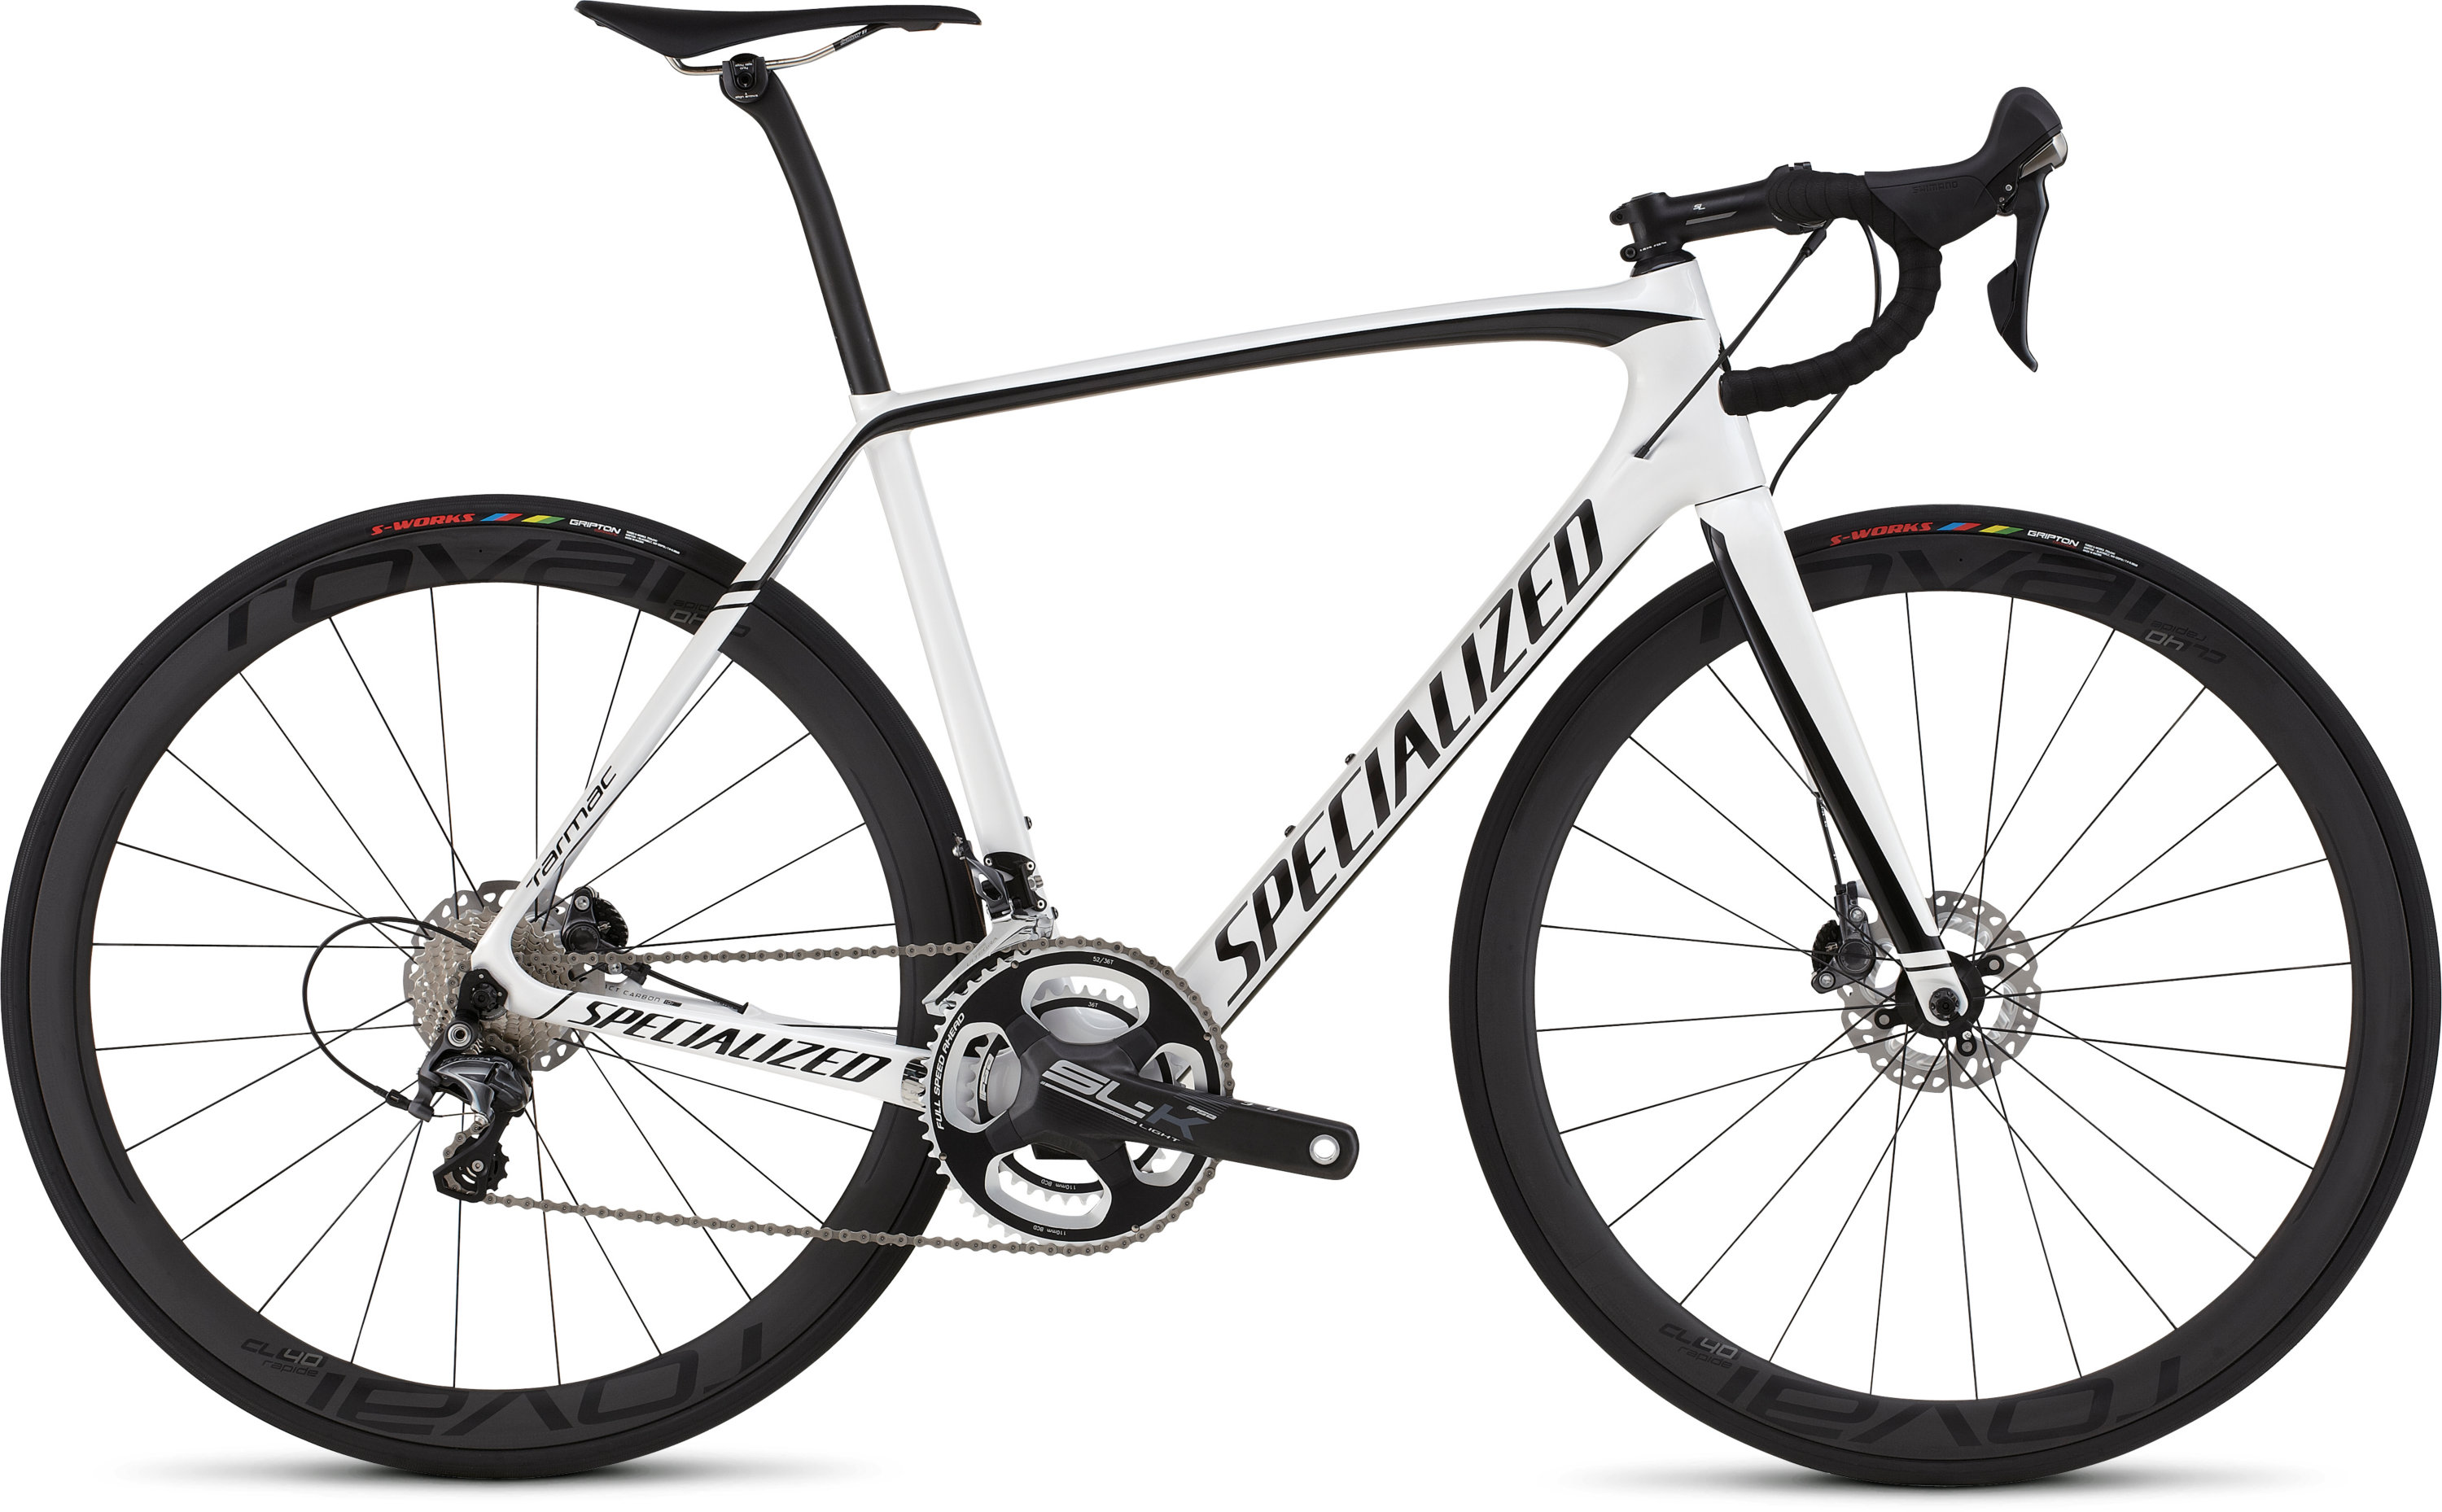 SPECIALIZED TARMAC EXPERT DISC RACE METWHT/TARBLK 49 - schneider-sports